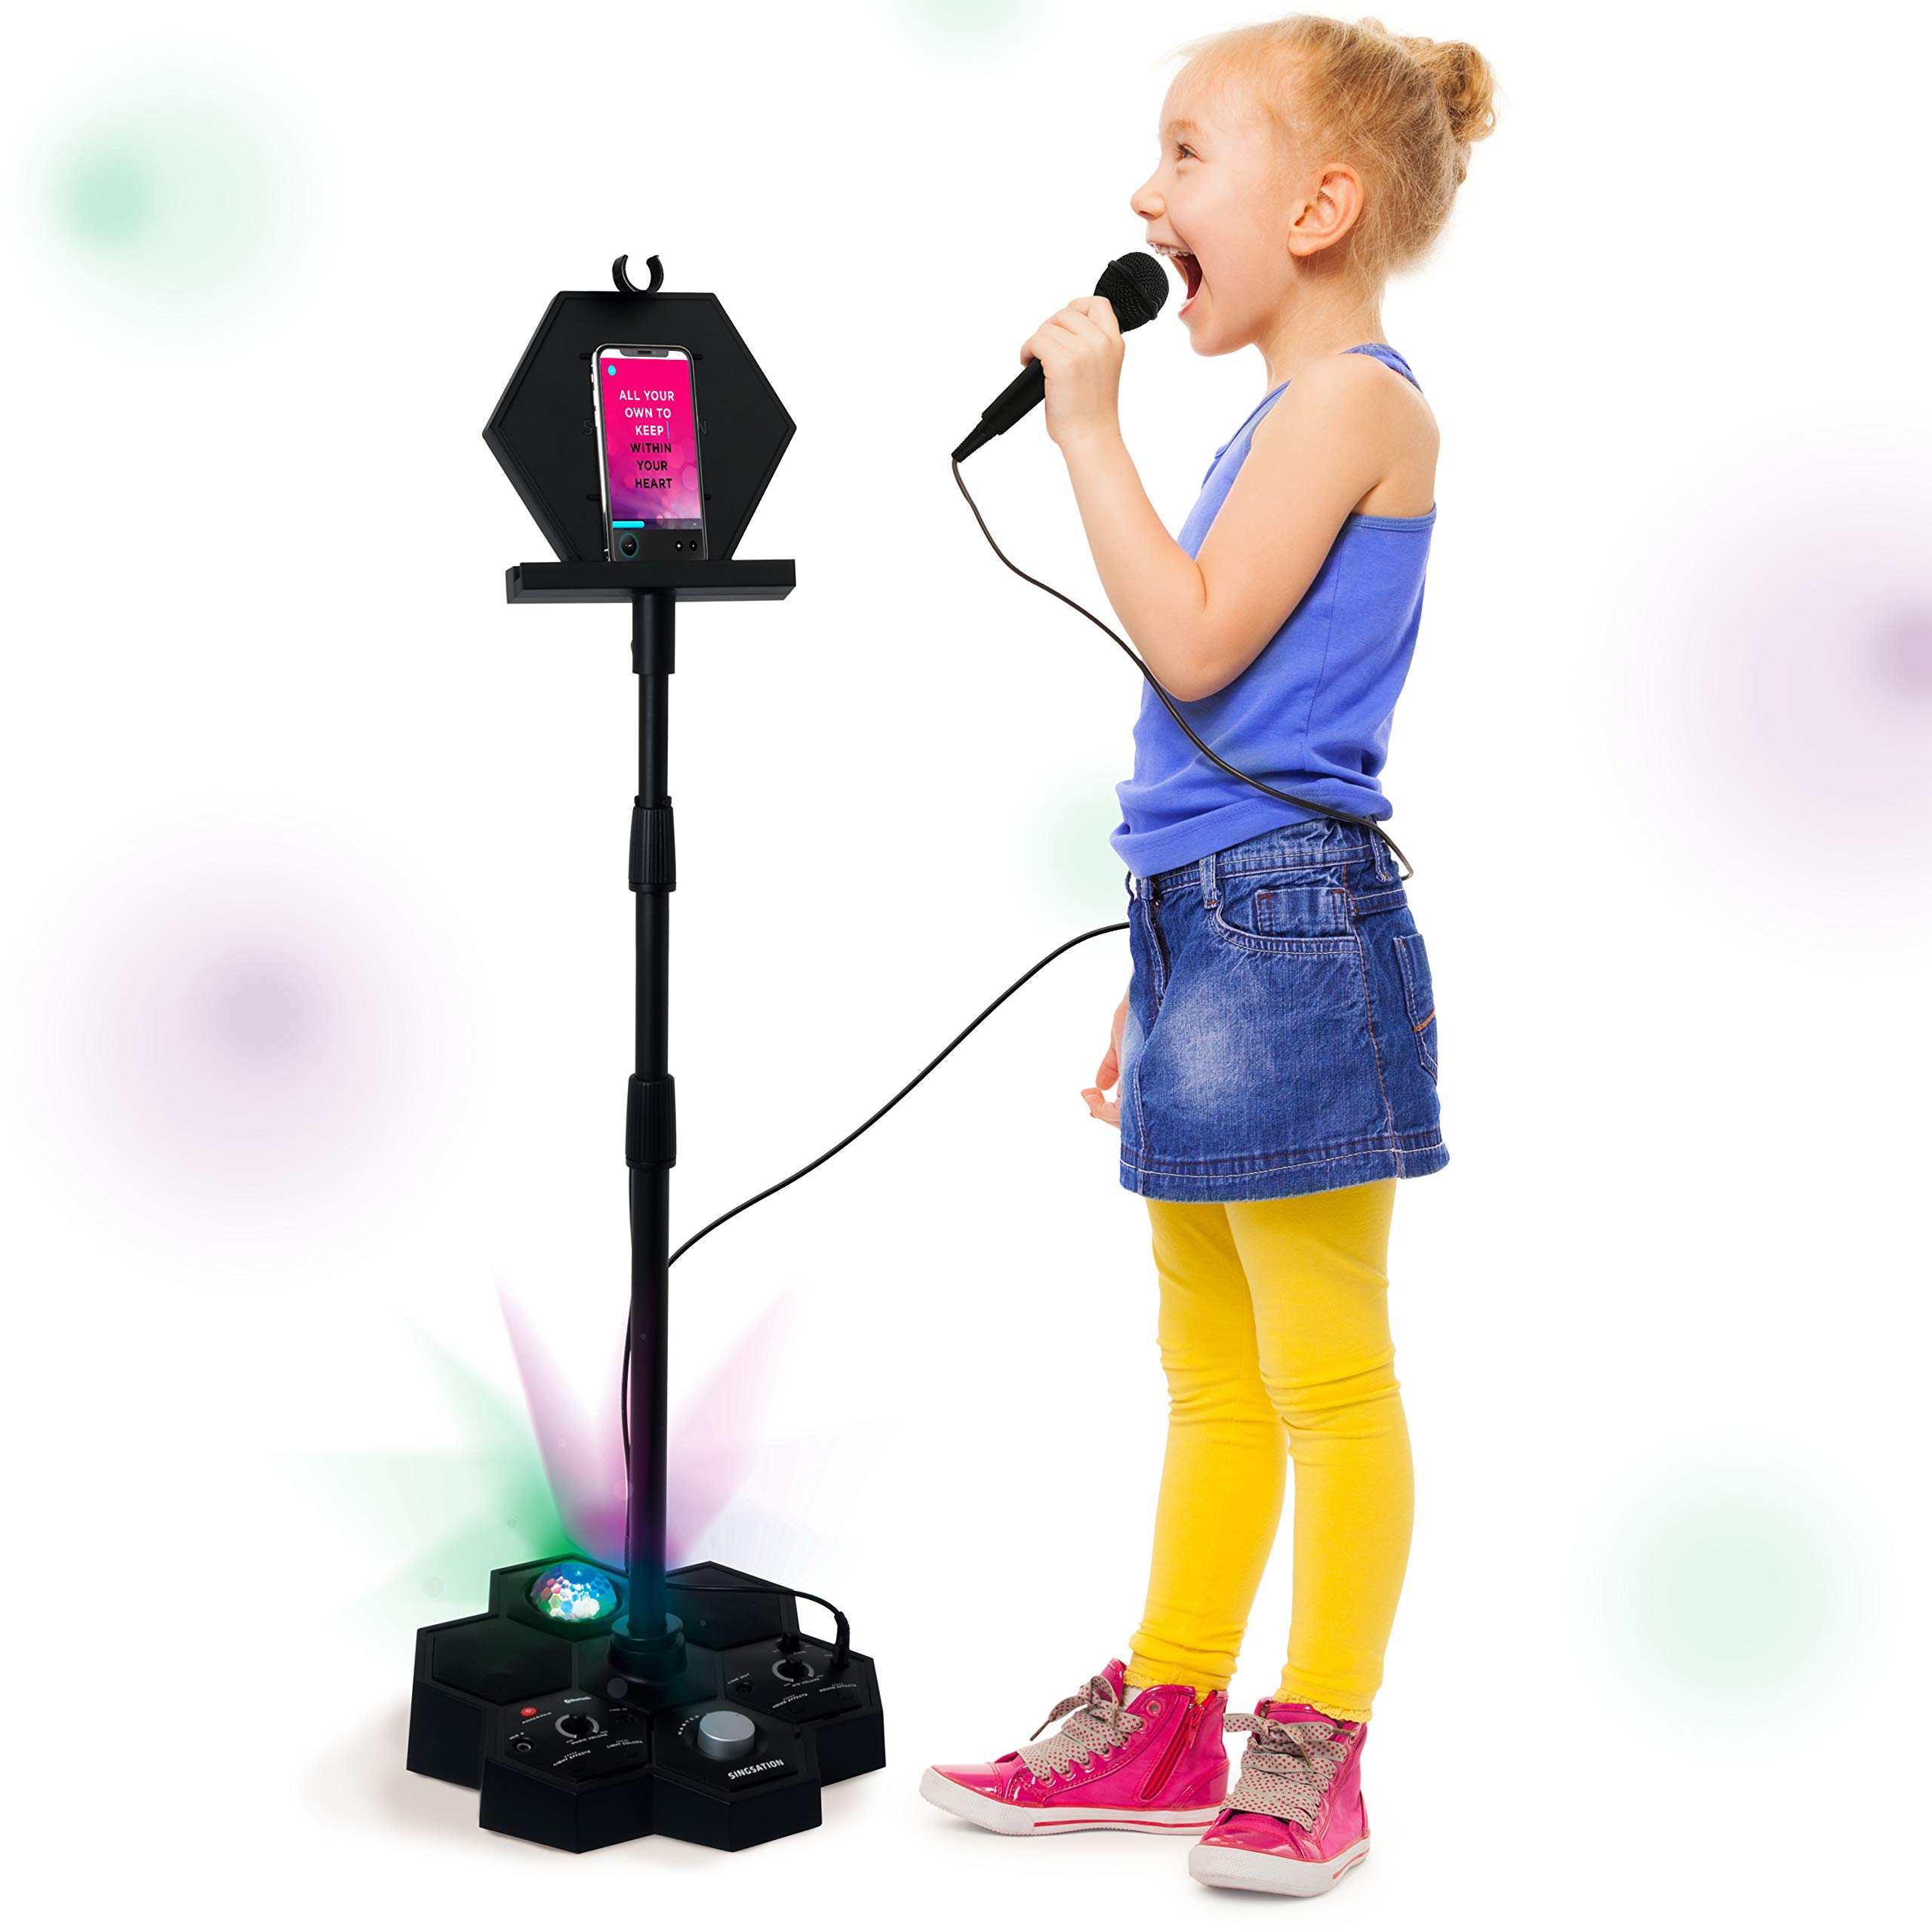 Singsation Accessory Microphone for SPKA30 and SPKA700 Karaoke Machine by 808 (Image #3)